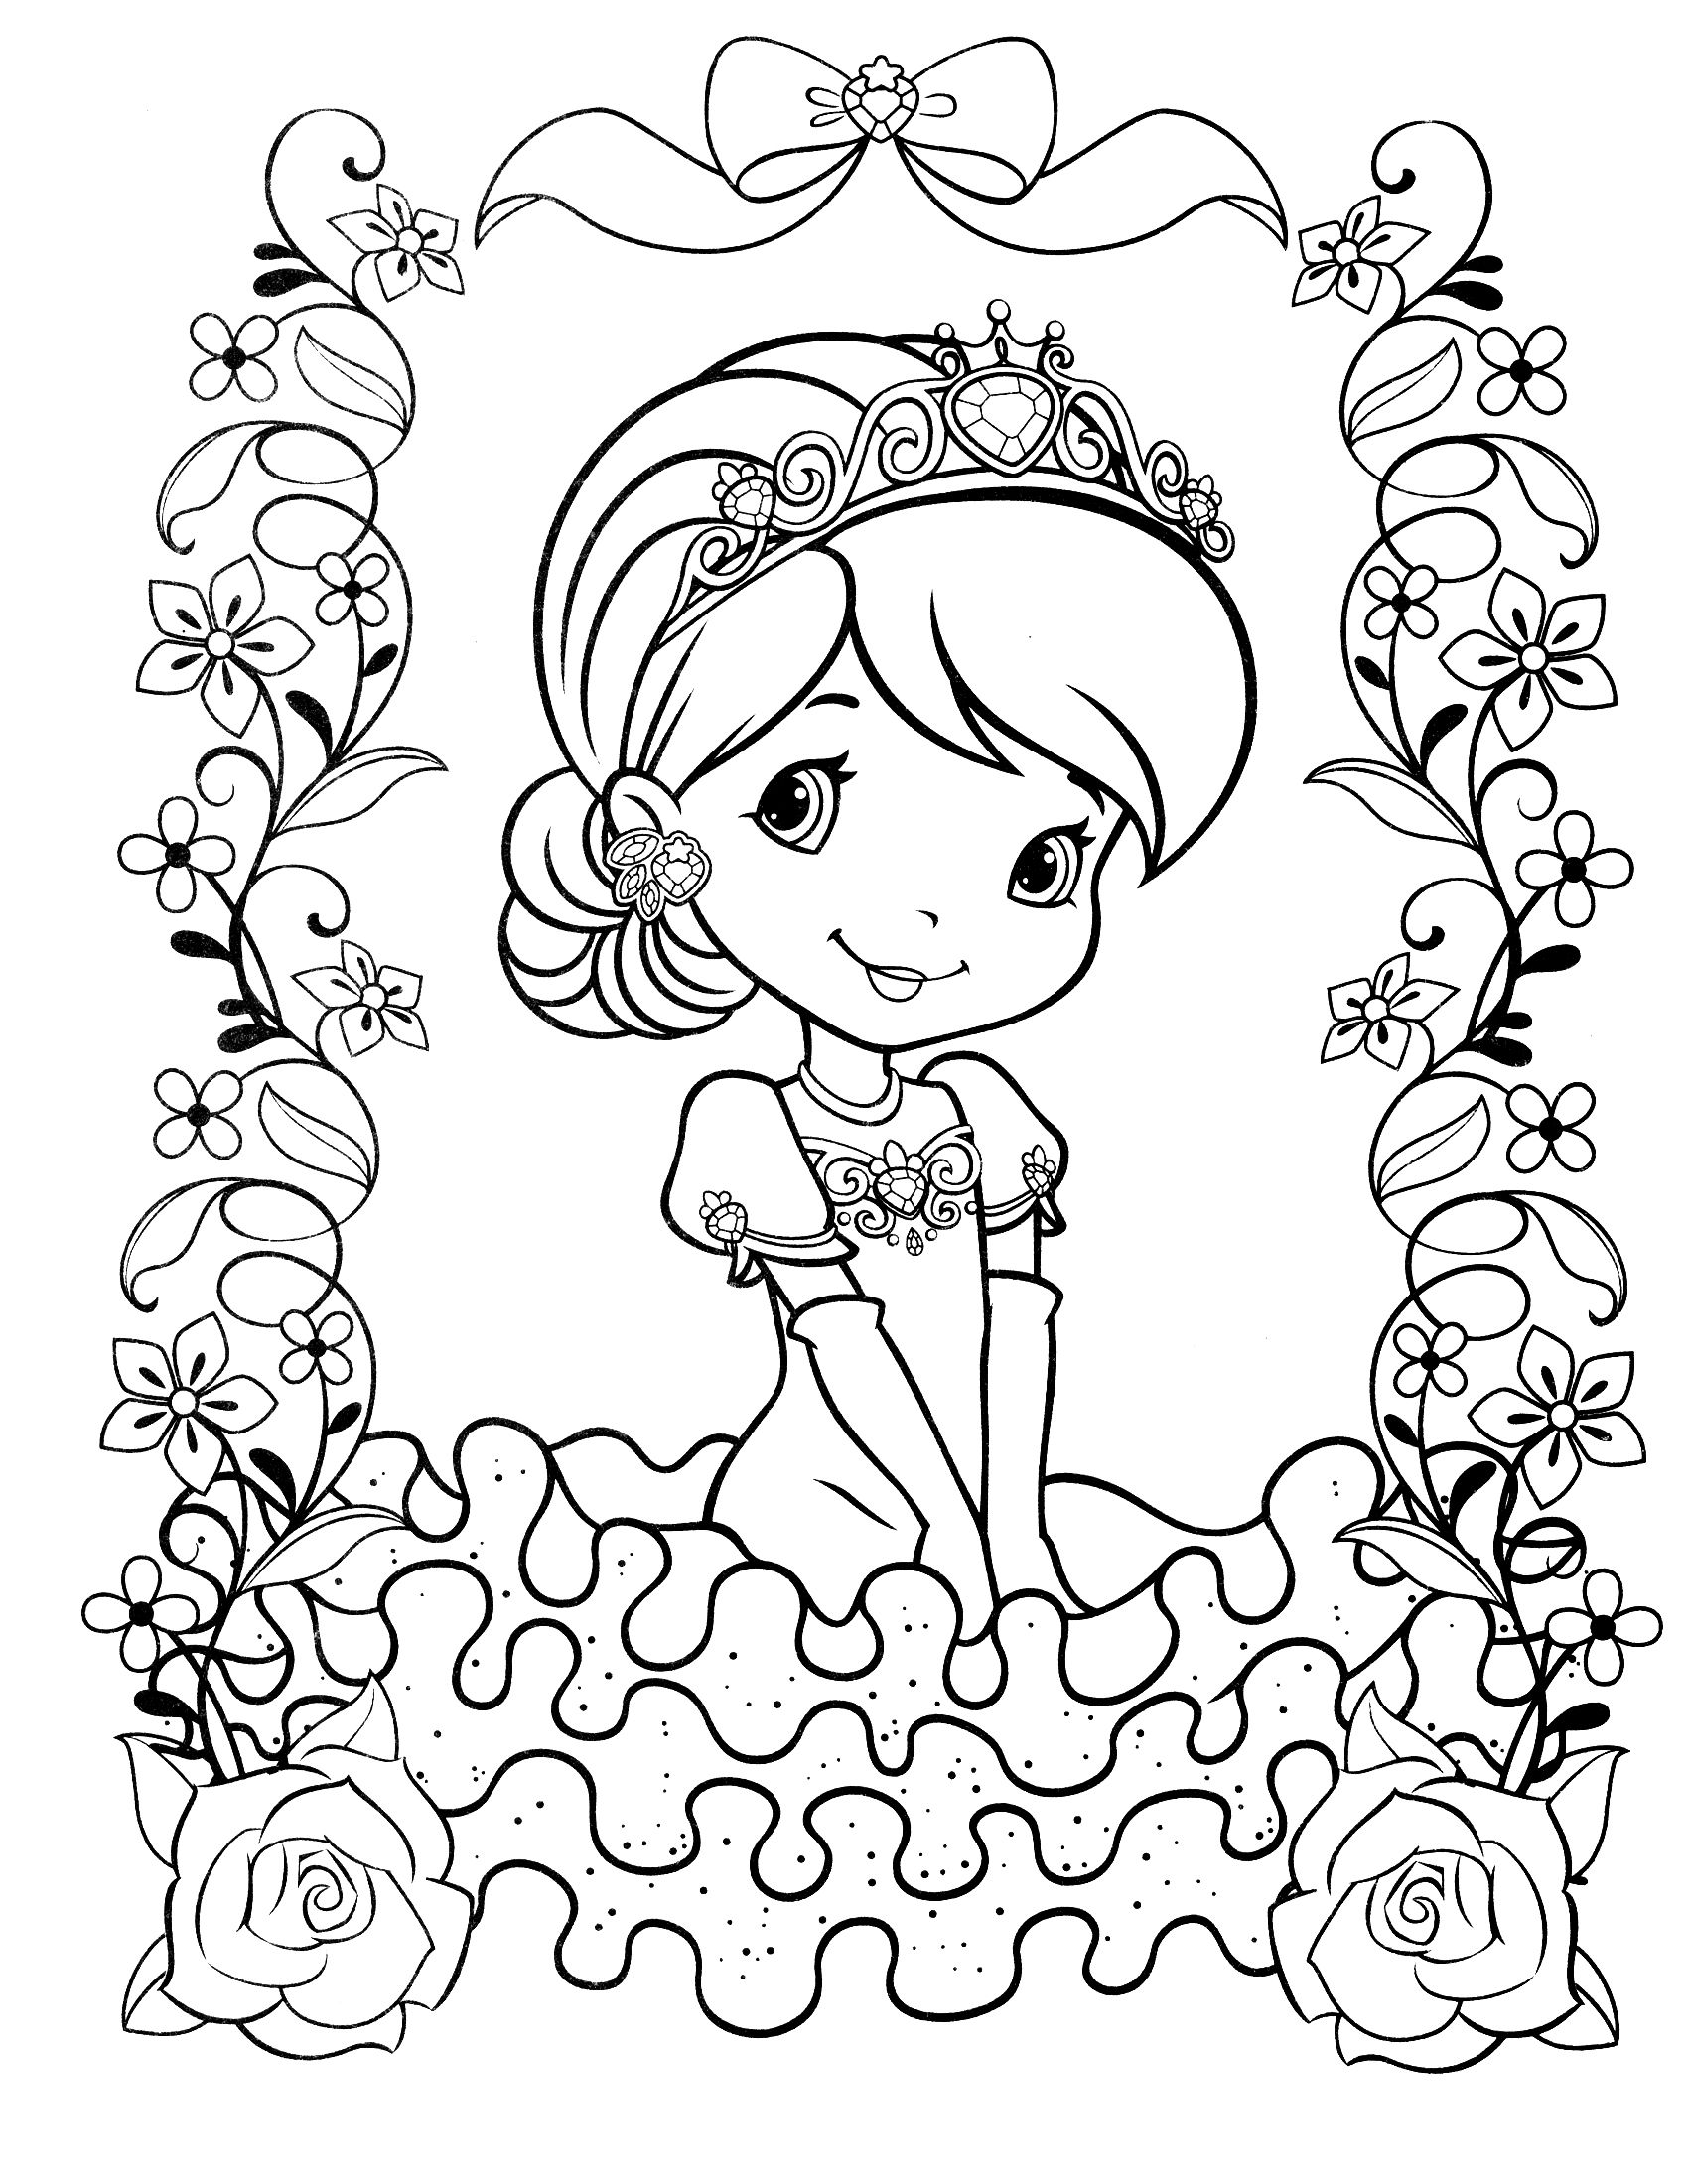 Strawberry Shortcake Coloring Page Cartoon Coloring Pages